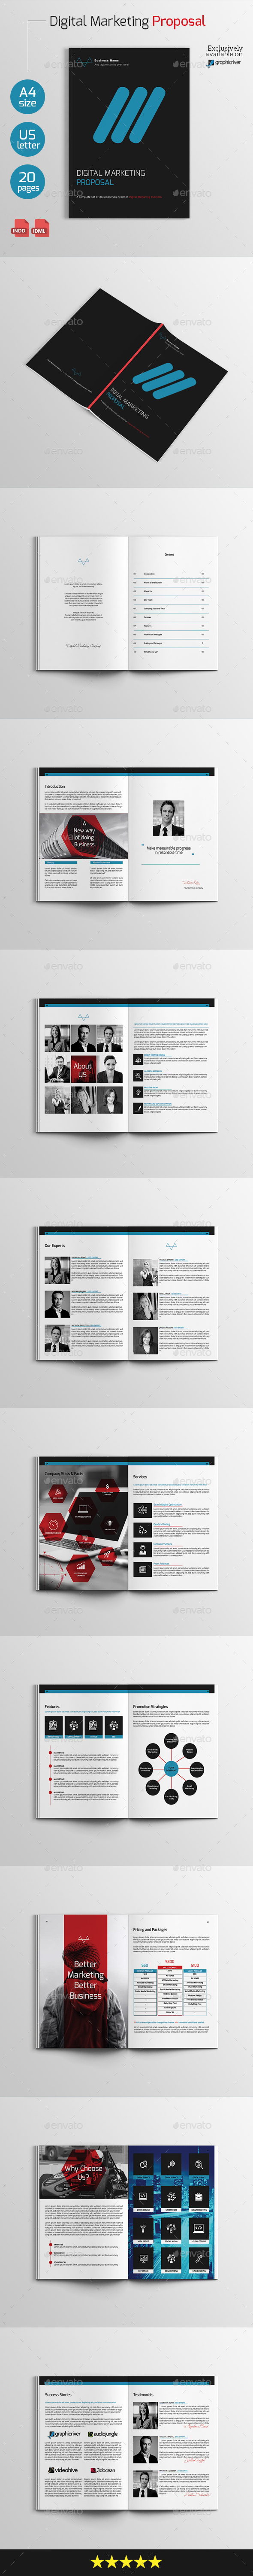 Digital Marketing Proposal - Proposals & Invoices Stationery